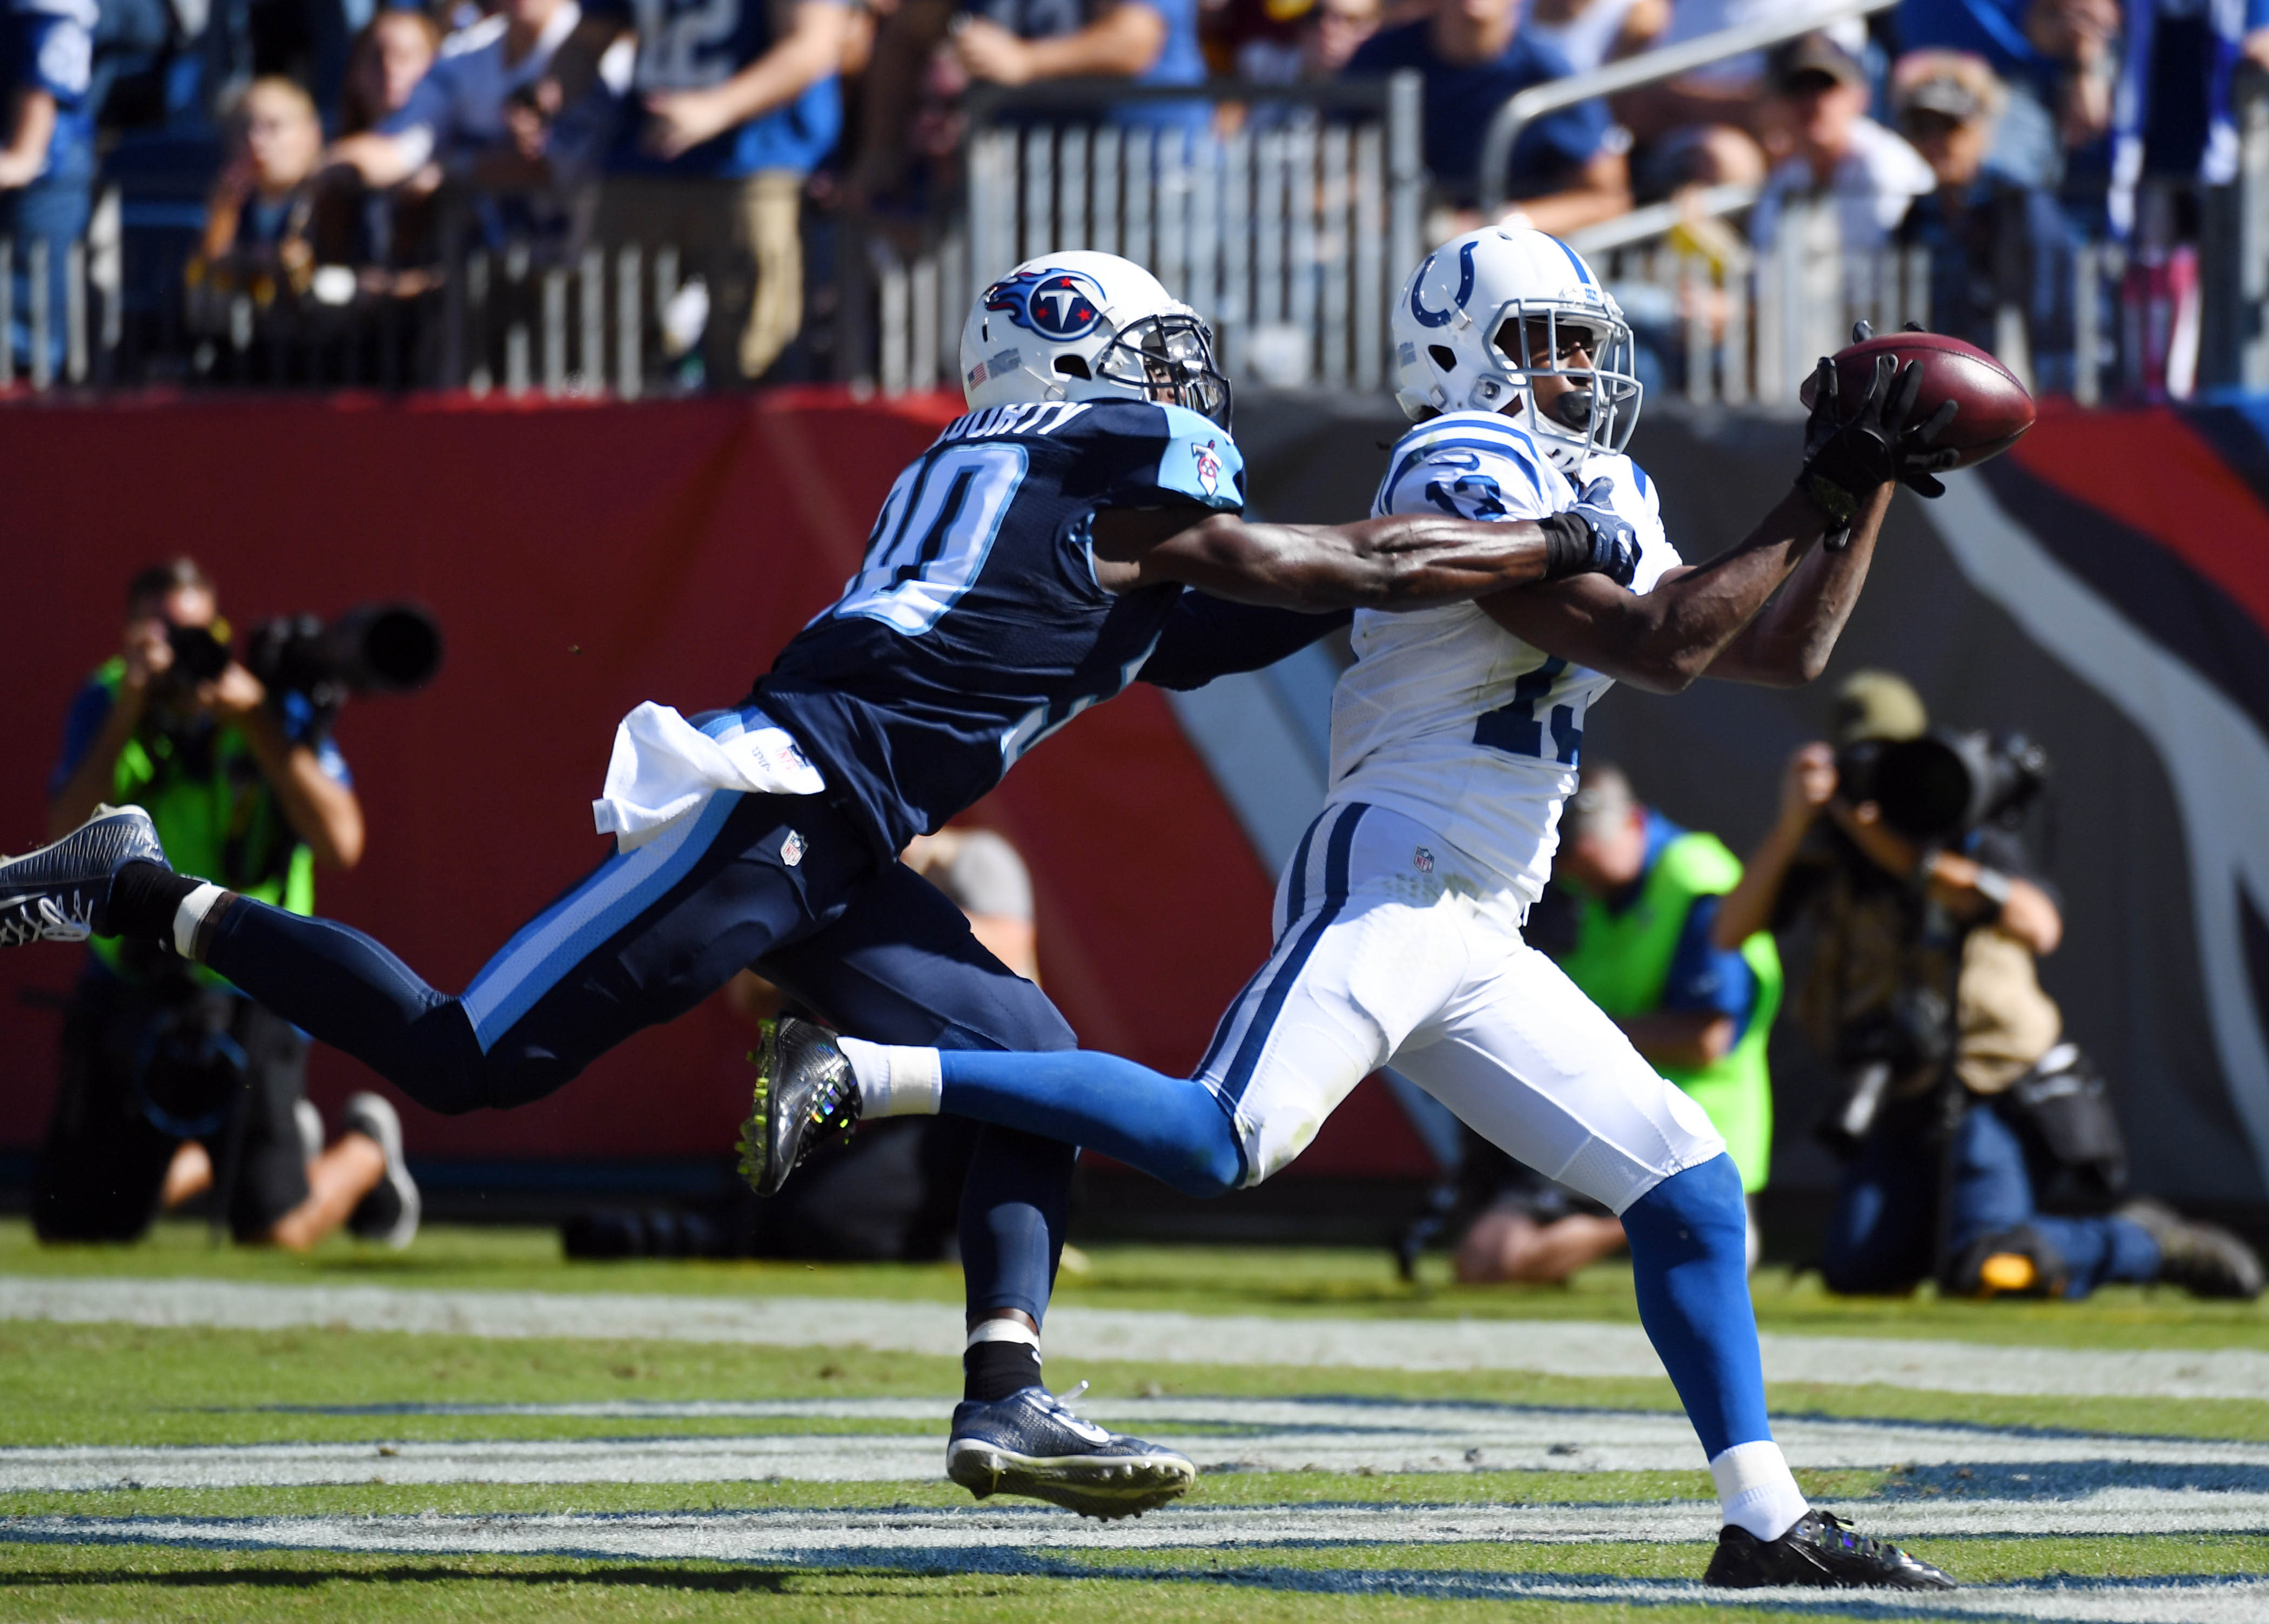 9627664-nfl-indianapolis-colts-at-tennessee-titans